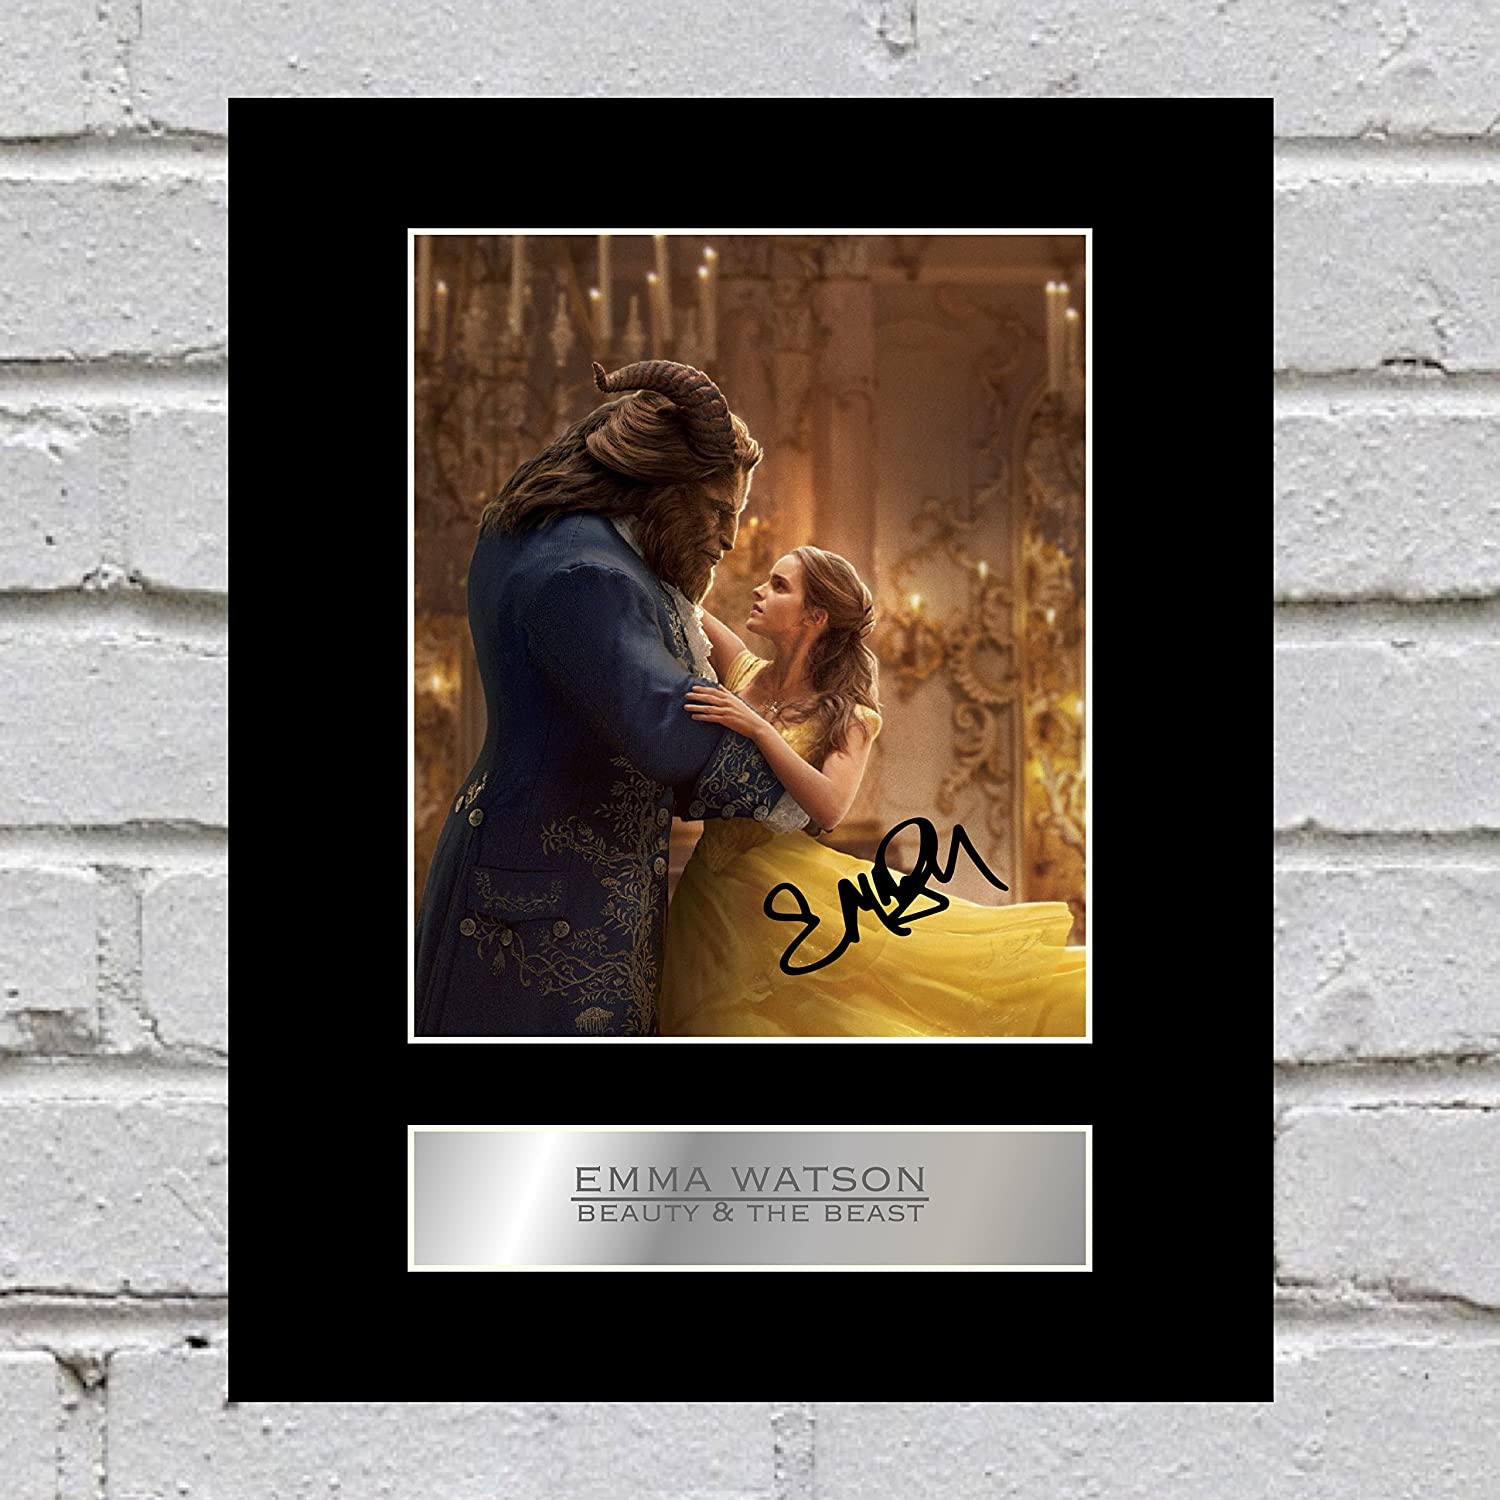 Emma Watson Signed Mounted Photo Display Beauty and the Beast Iconic pics